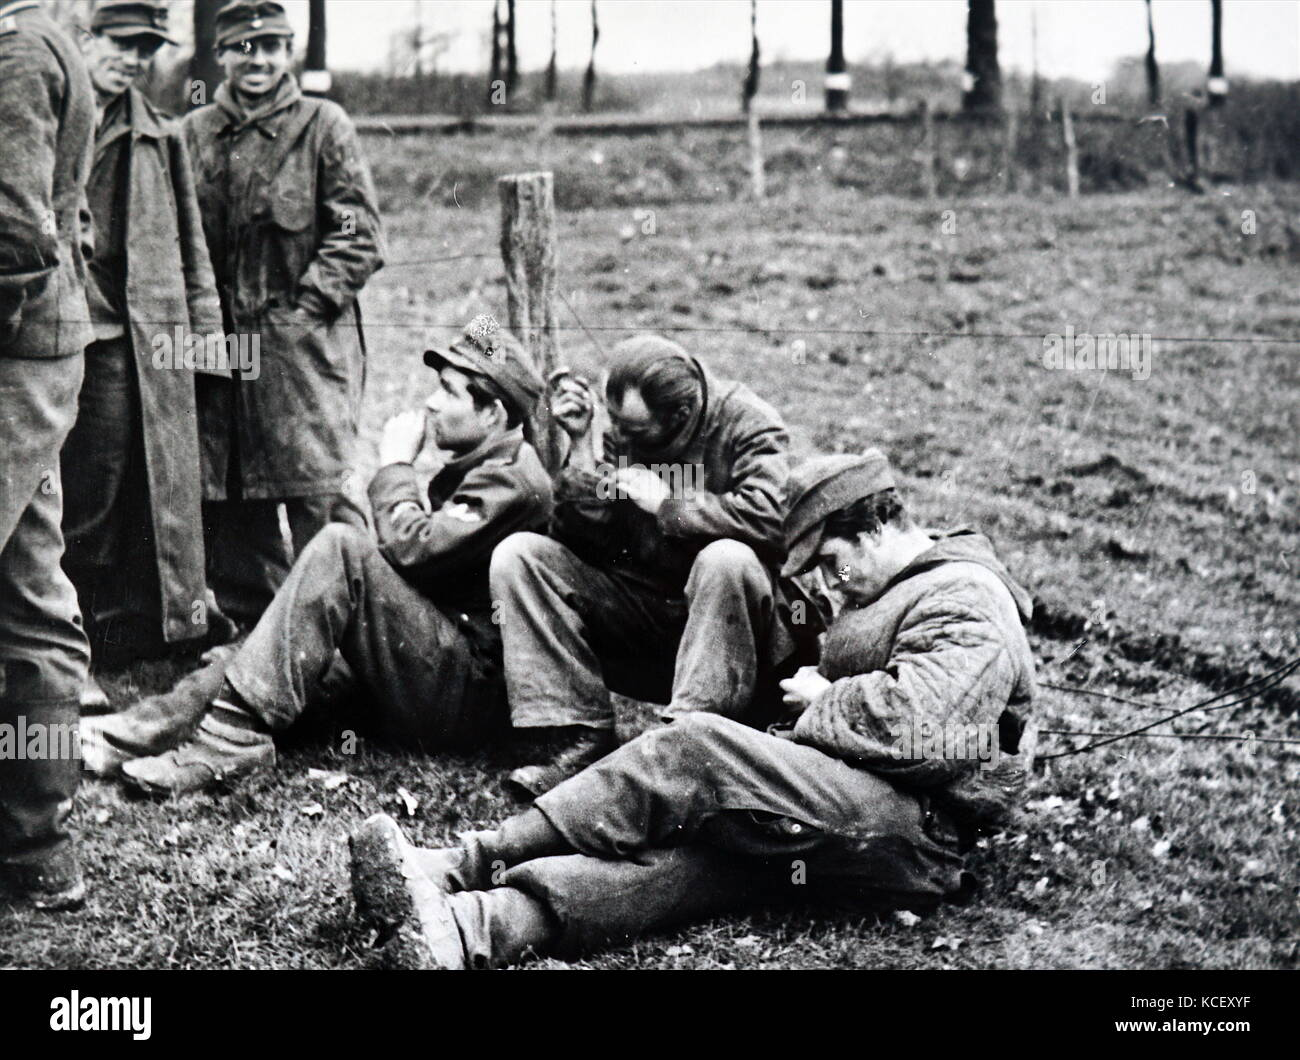 Photograph of German prisoners of war in France 1944 during the Second World War. Dated 20th Century - Stock Image